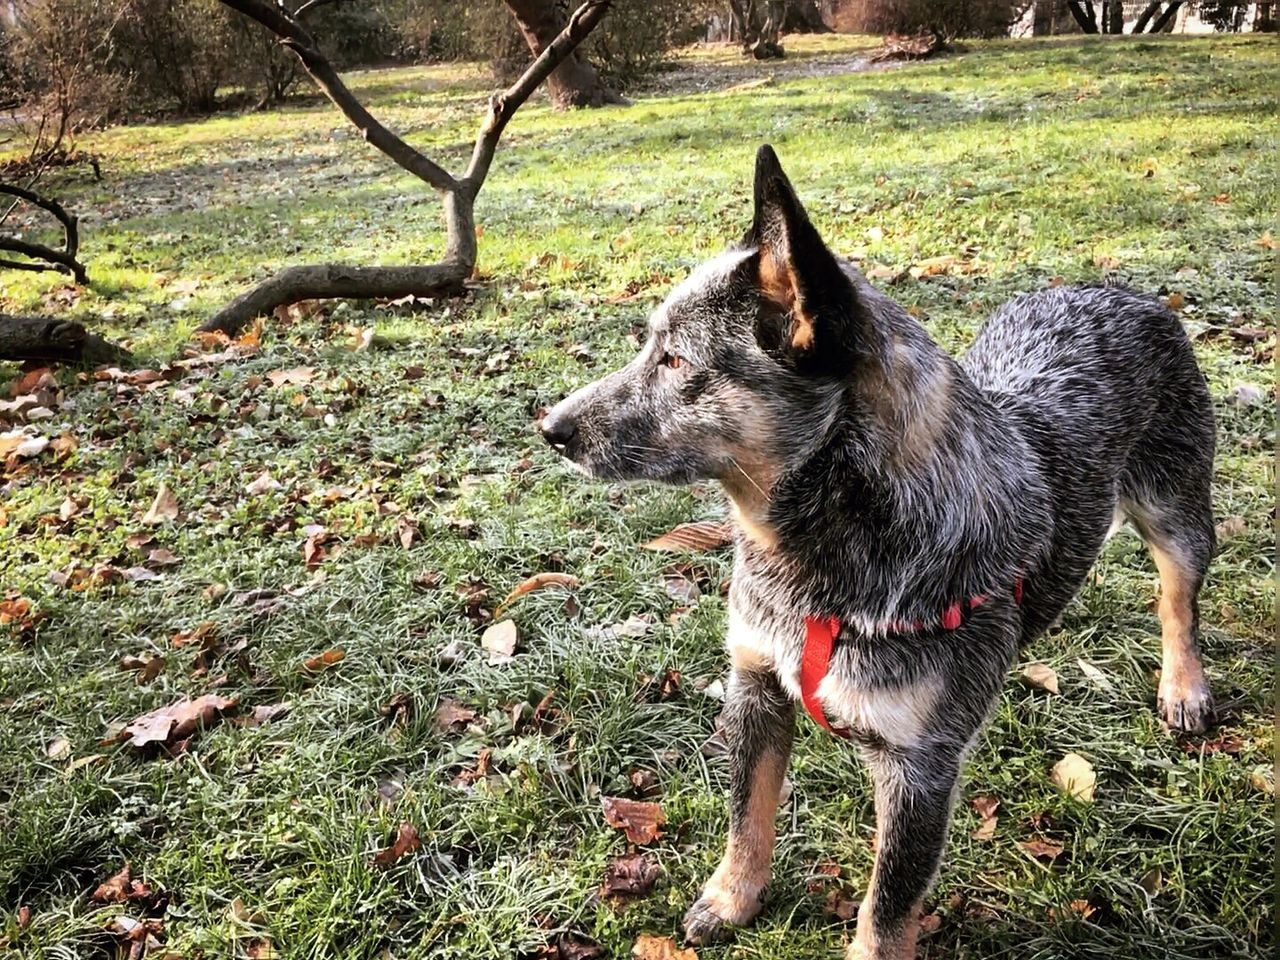 Looking for Santa in all the wrong places Animal Themes Domestic Animals One Animal Mammal Grass Pets Dog Field No People Outdoors Day Nature Australian Cattle Dog Blue Dog ACD  Blue Heeler Cattledog Nature Cattle Dog Australiancattledog Heeler